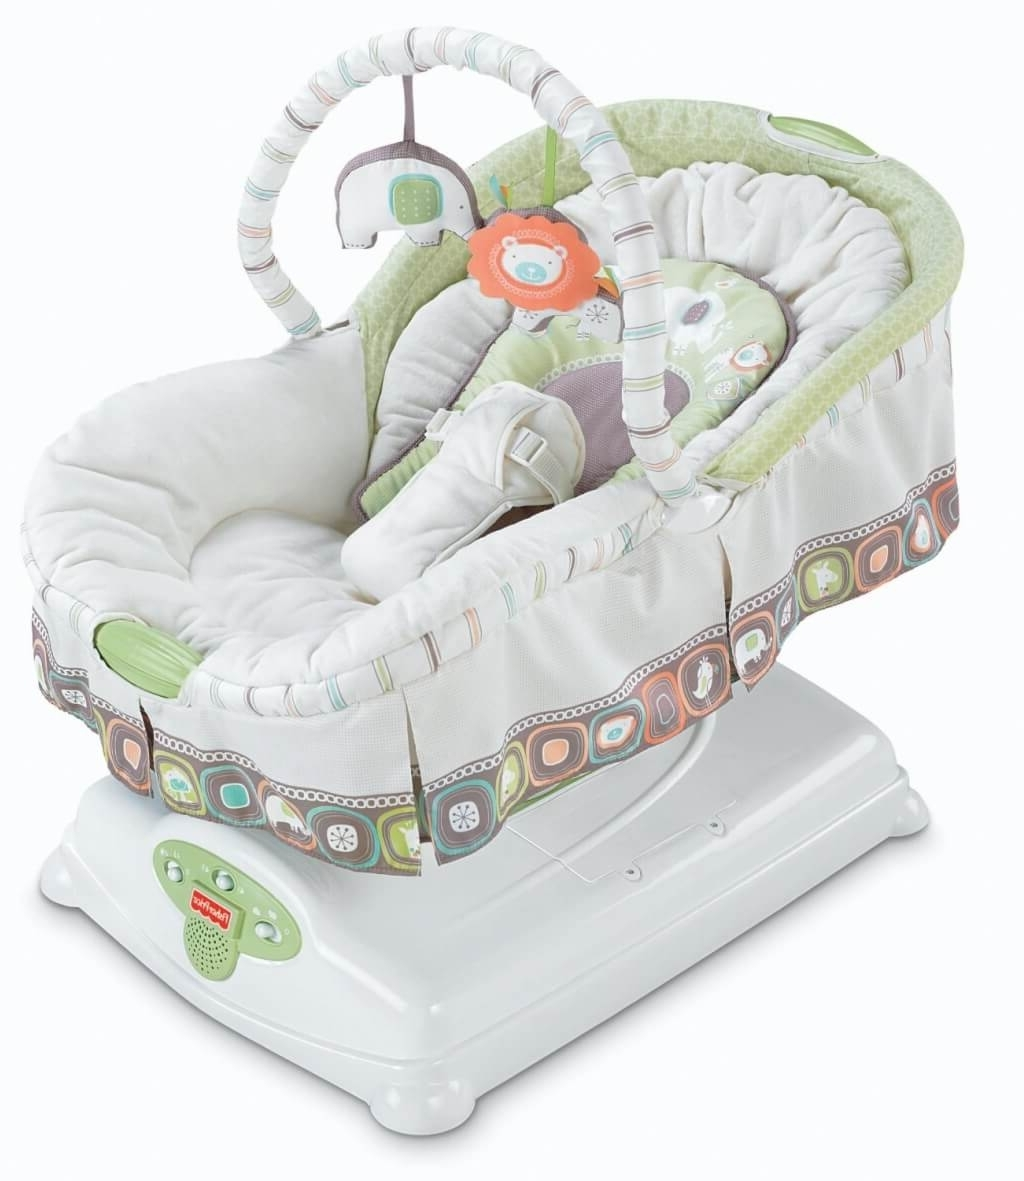 Rocking Chairs For Babies With 2018 Furniture: Luxury Baby Rocking Chair With Bouncer And White Baby (View 12 of 15)